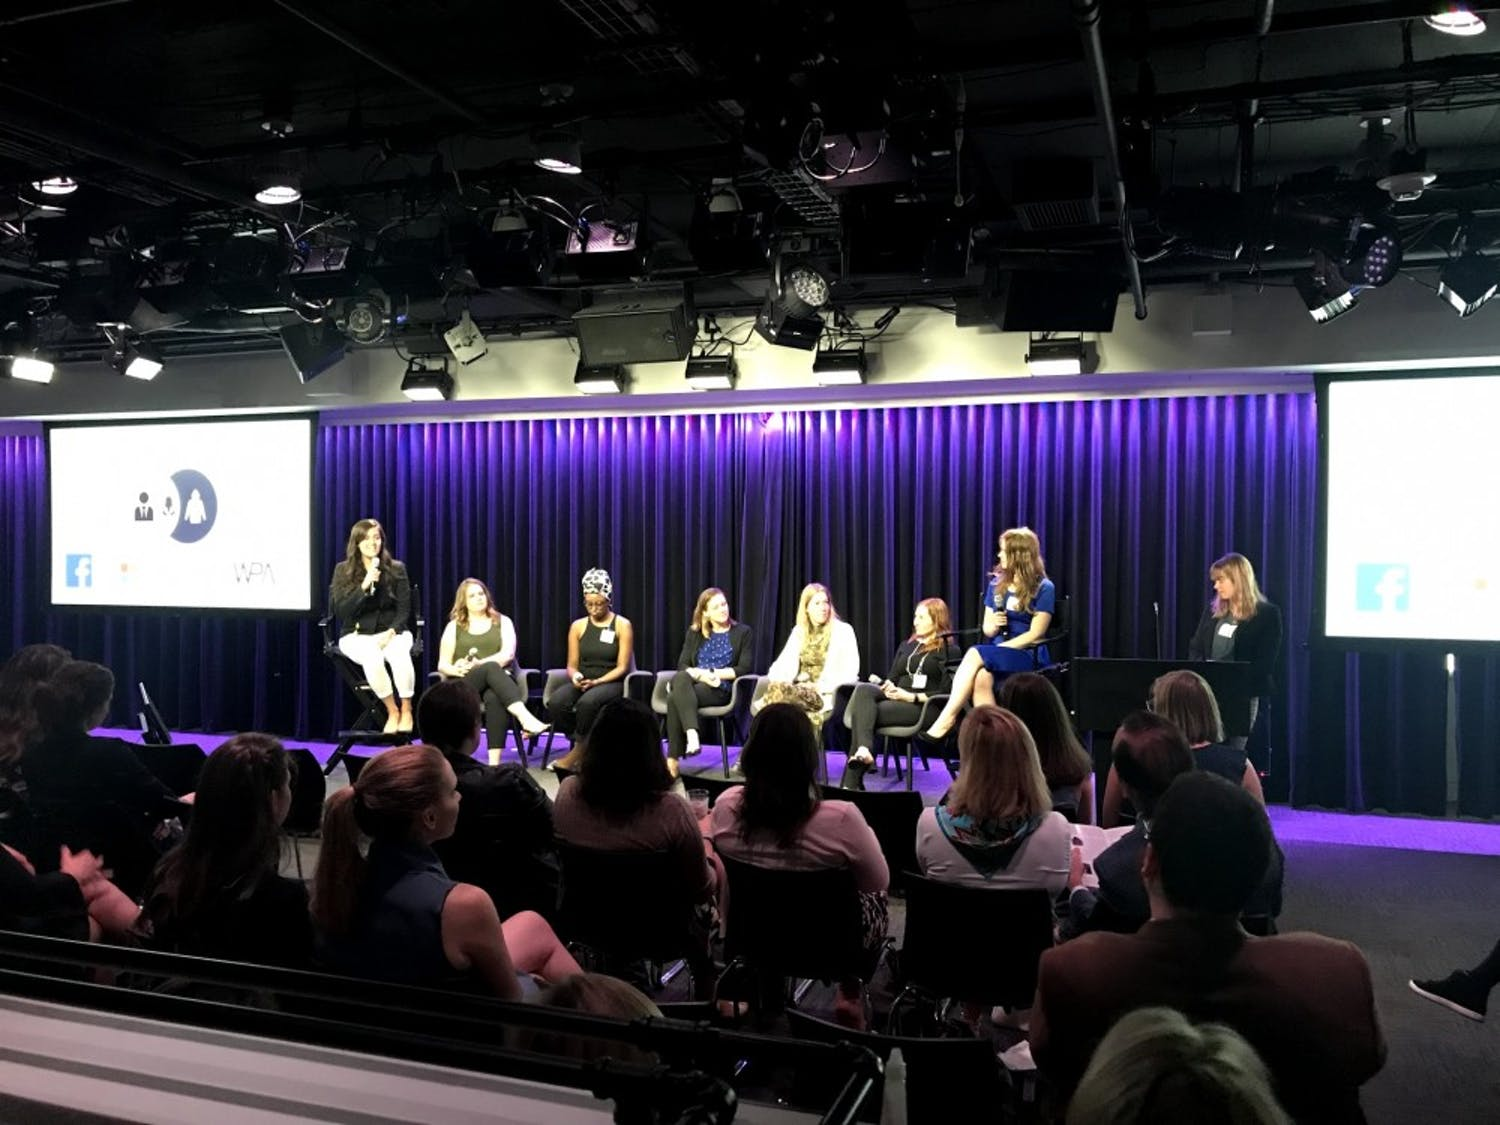 Picture with all the people on stage is the panel discussion with political tech women who worked on presidential campaigns that was moderated by two students.  Photo Courtesy of Daniel Kreiss